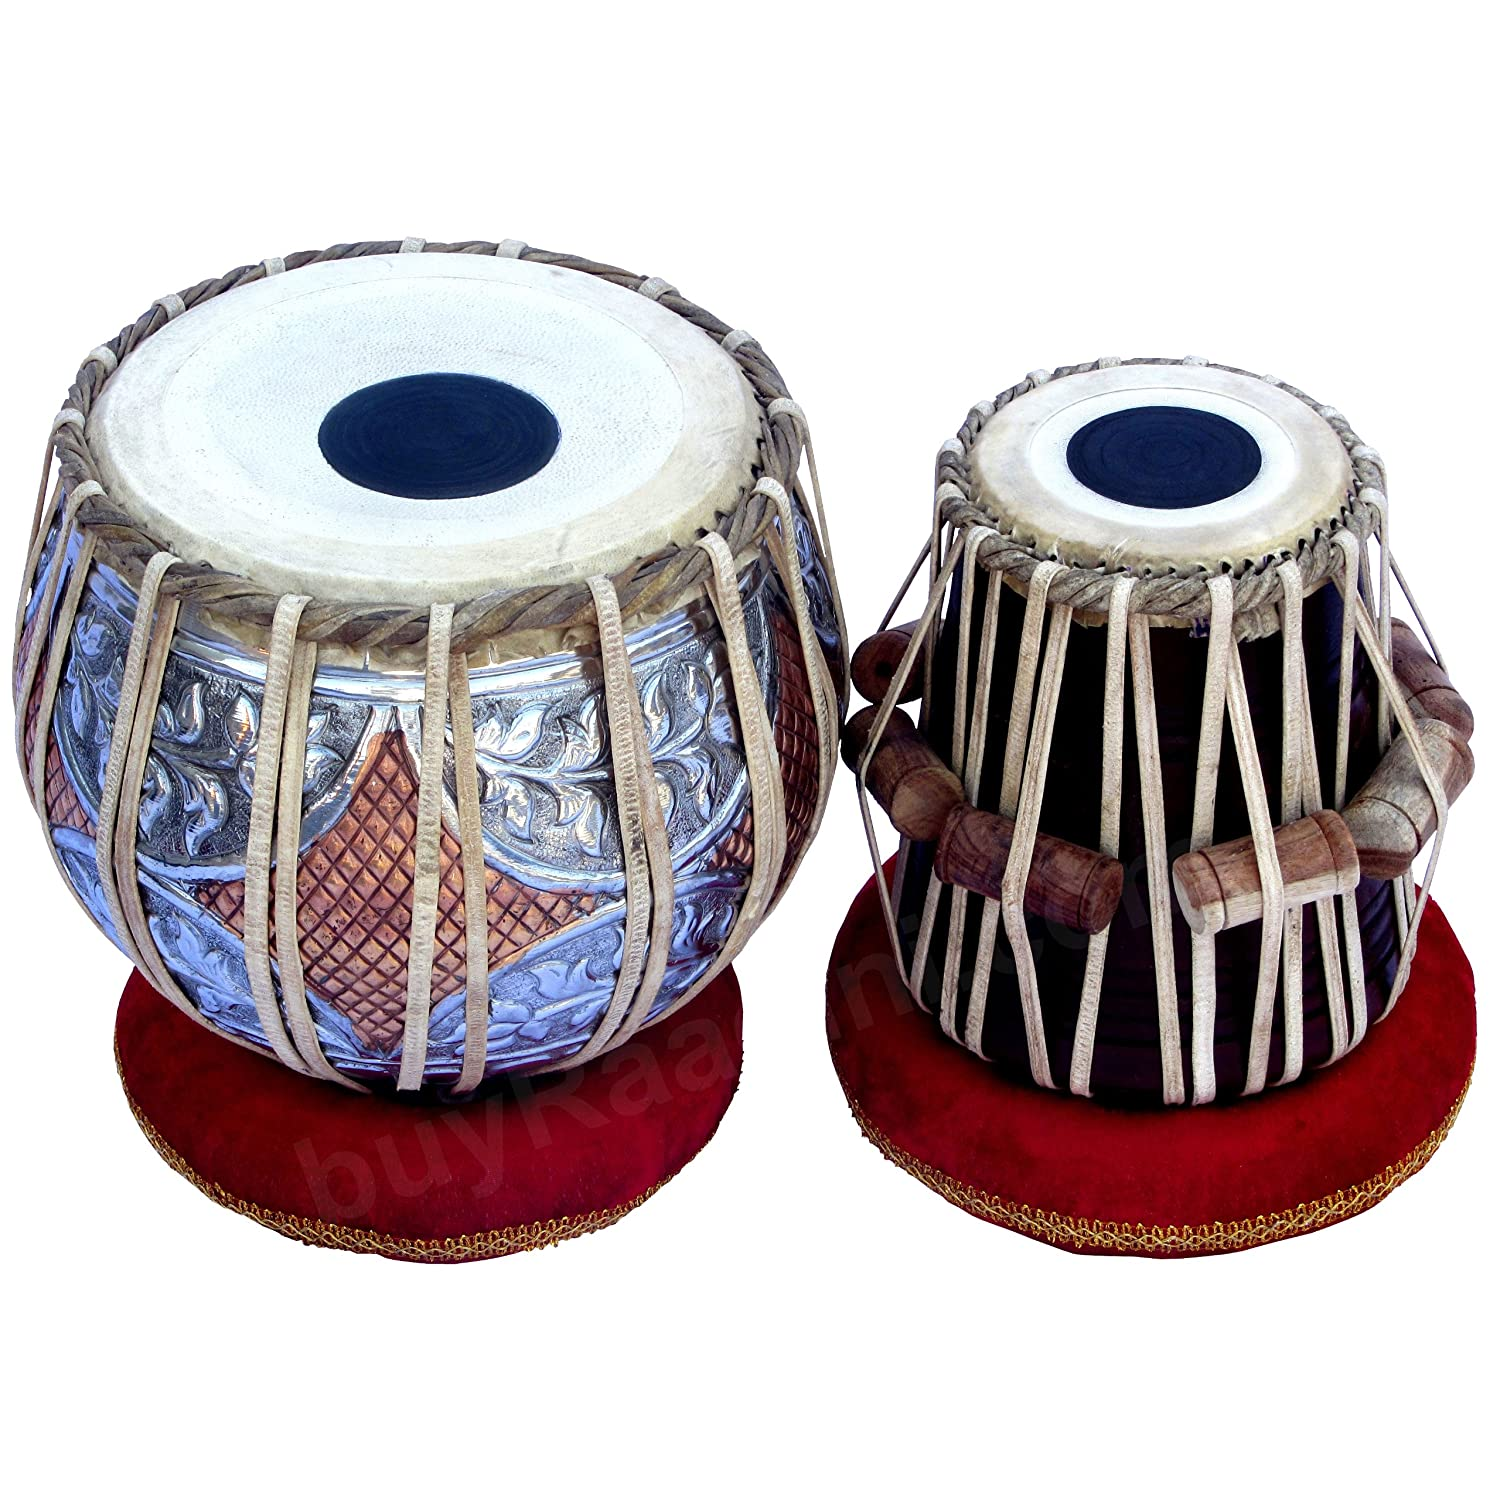 Maharaja Musicals Tabla Drum Set, Concert Quality, 4.5Kg Copper Bayan - Double Color, Sheesham Dayan Tuneable To C#, Padded Bag, Book, Hammer, Cushions & Cover, Indian Hand Drums (PDI-GJ) buyRaagini.com